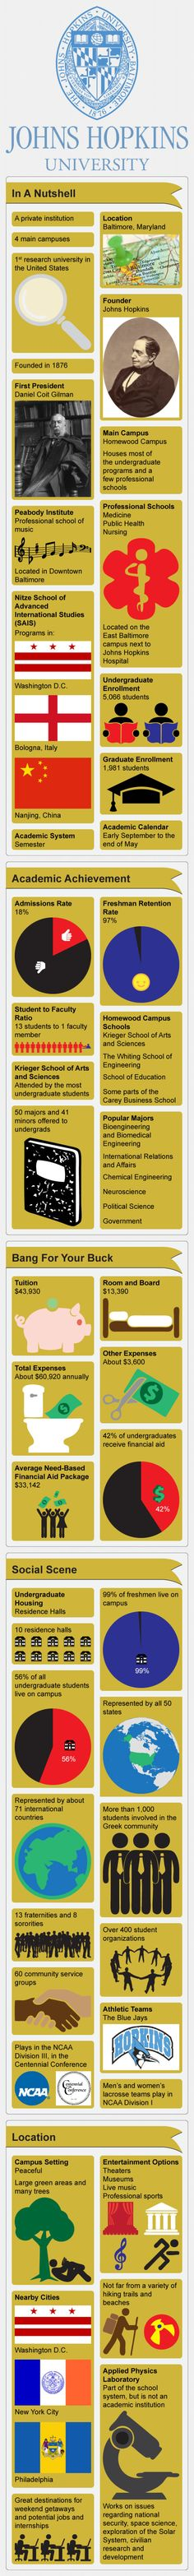 John Hopkins University Infographic. Correct for the most part!